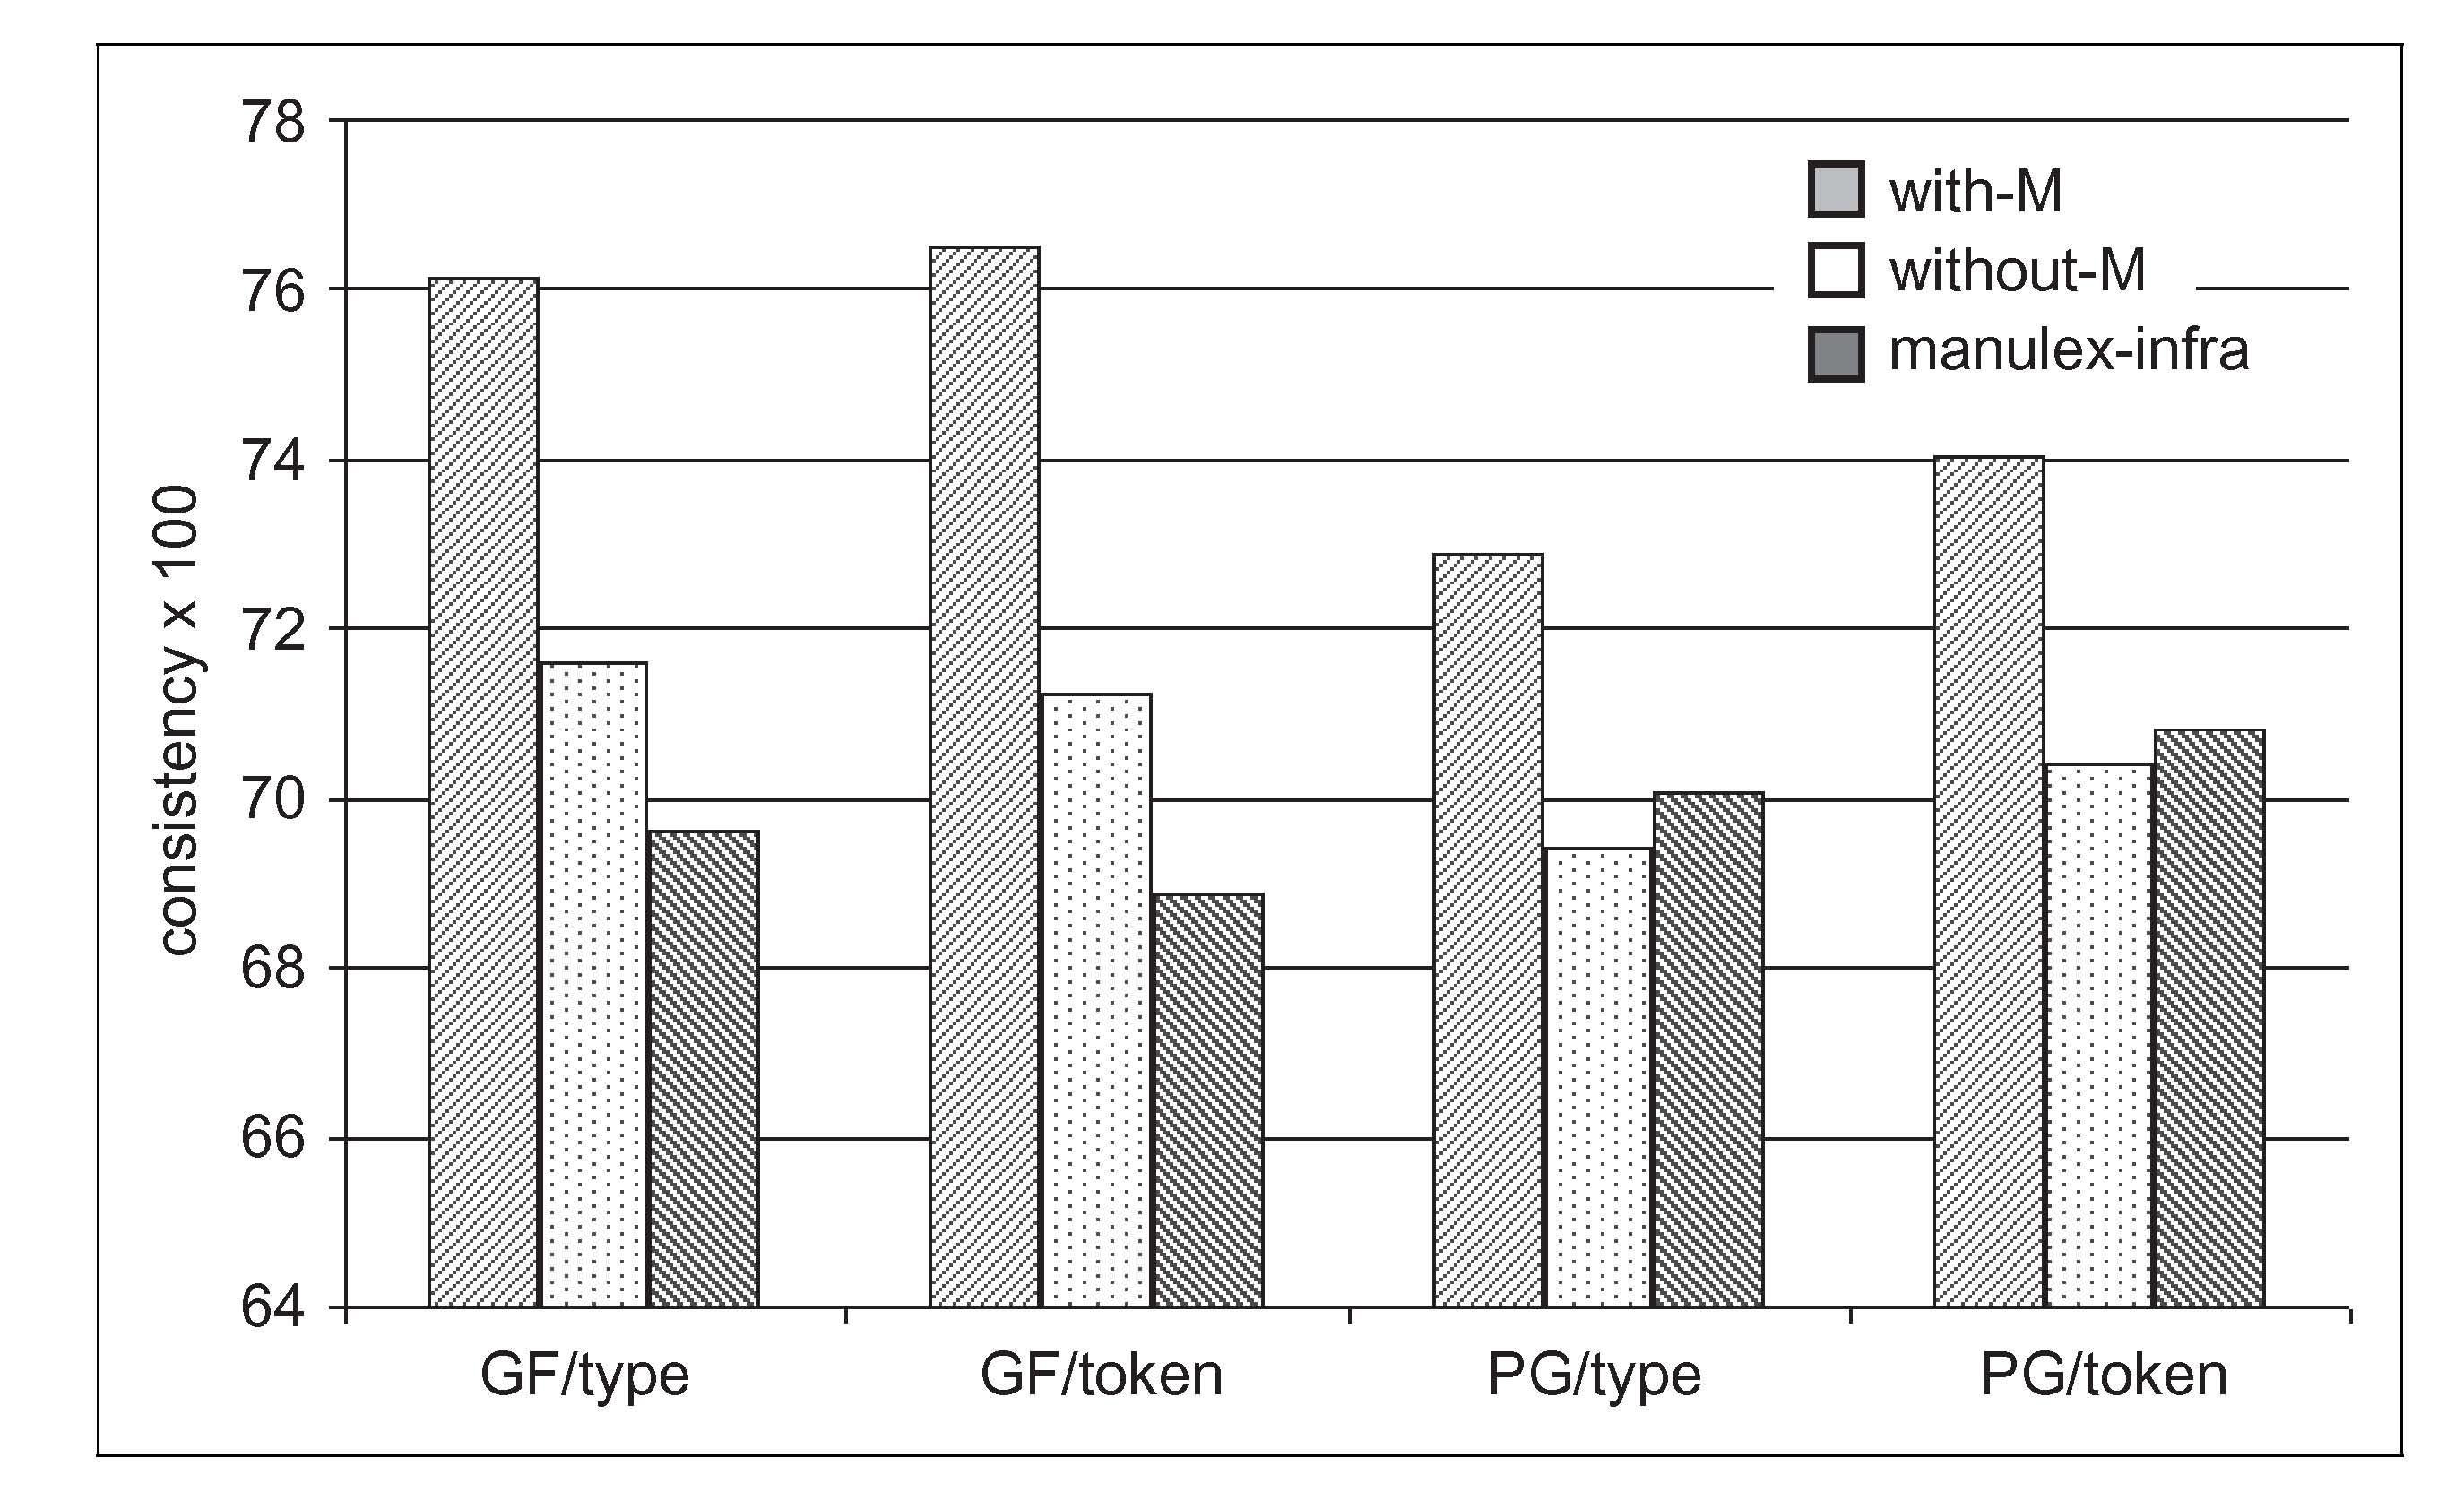 The Contribution Of Morphology To Consistency Spelling Php 130453relaycircuitwithoptocouplerdrivenbypropio Page3 Figure 1 Mean Multiplied By 100 Observed In Three Analyses With M Without Manulex Infra For Gp And Pg Mappings Estimated Type